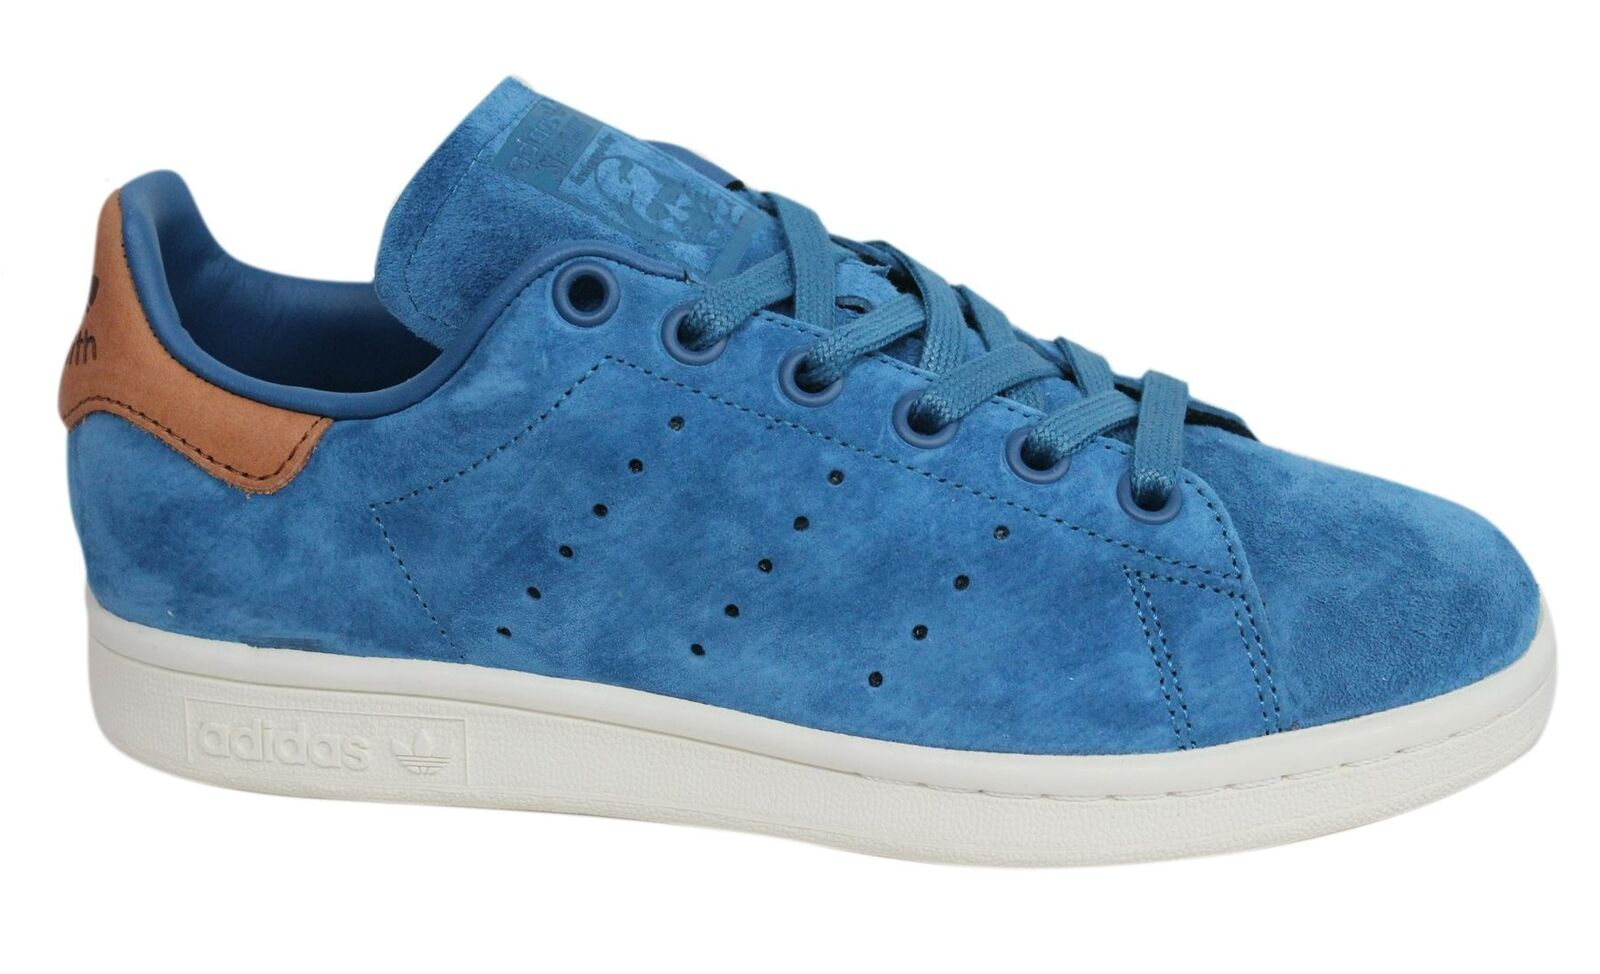 Adidas Originals Stan Marrón Smith Lace Up Azul Marrón Stan Leather Hombre Trainers BB0043 U28 fa77cf